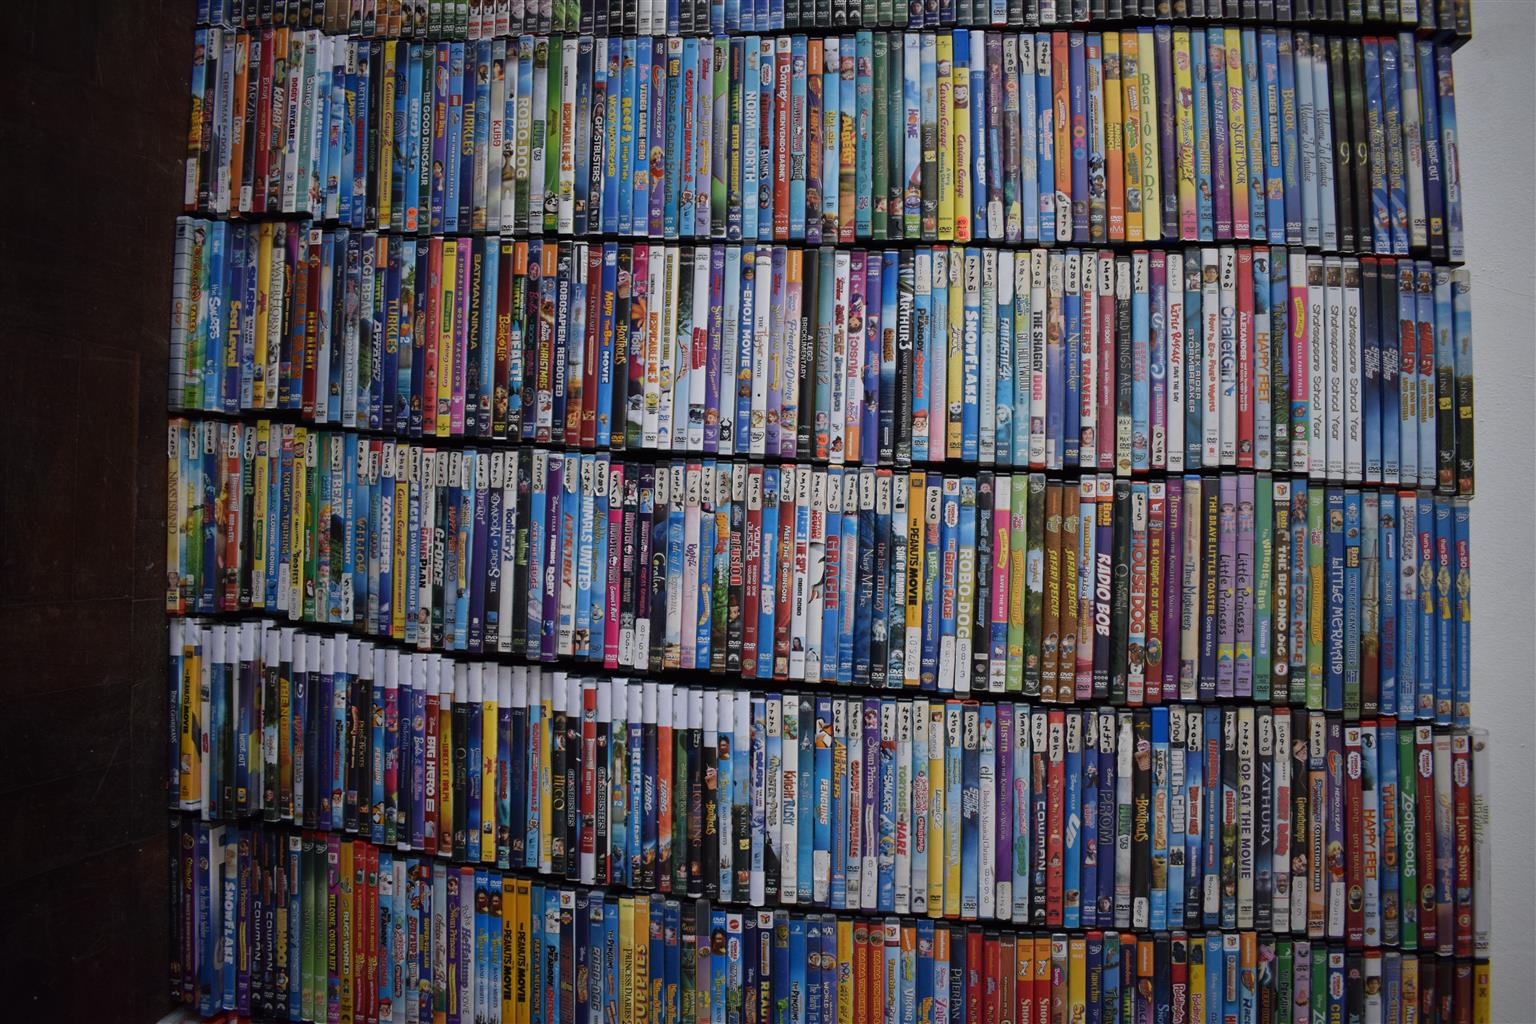 13 000 Original Dvds and series in Original covers Buy for home Start business or add to existing